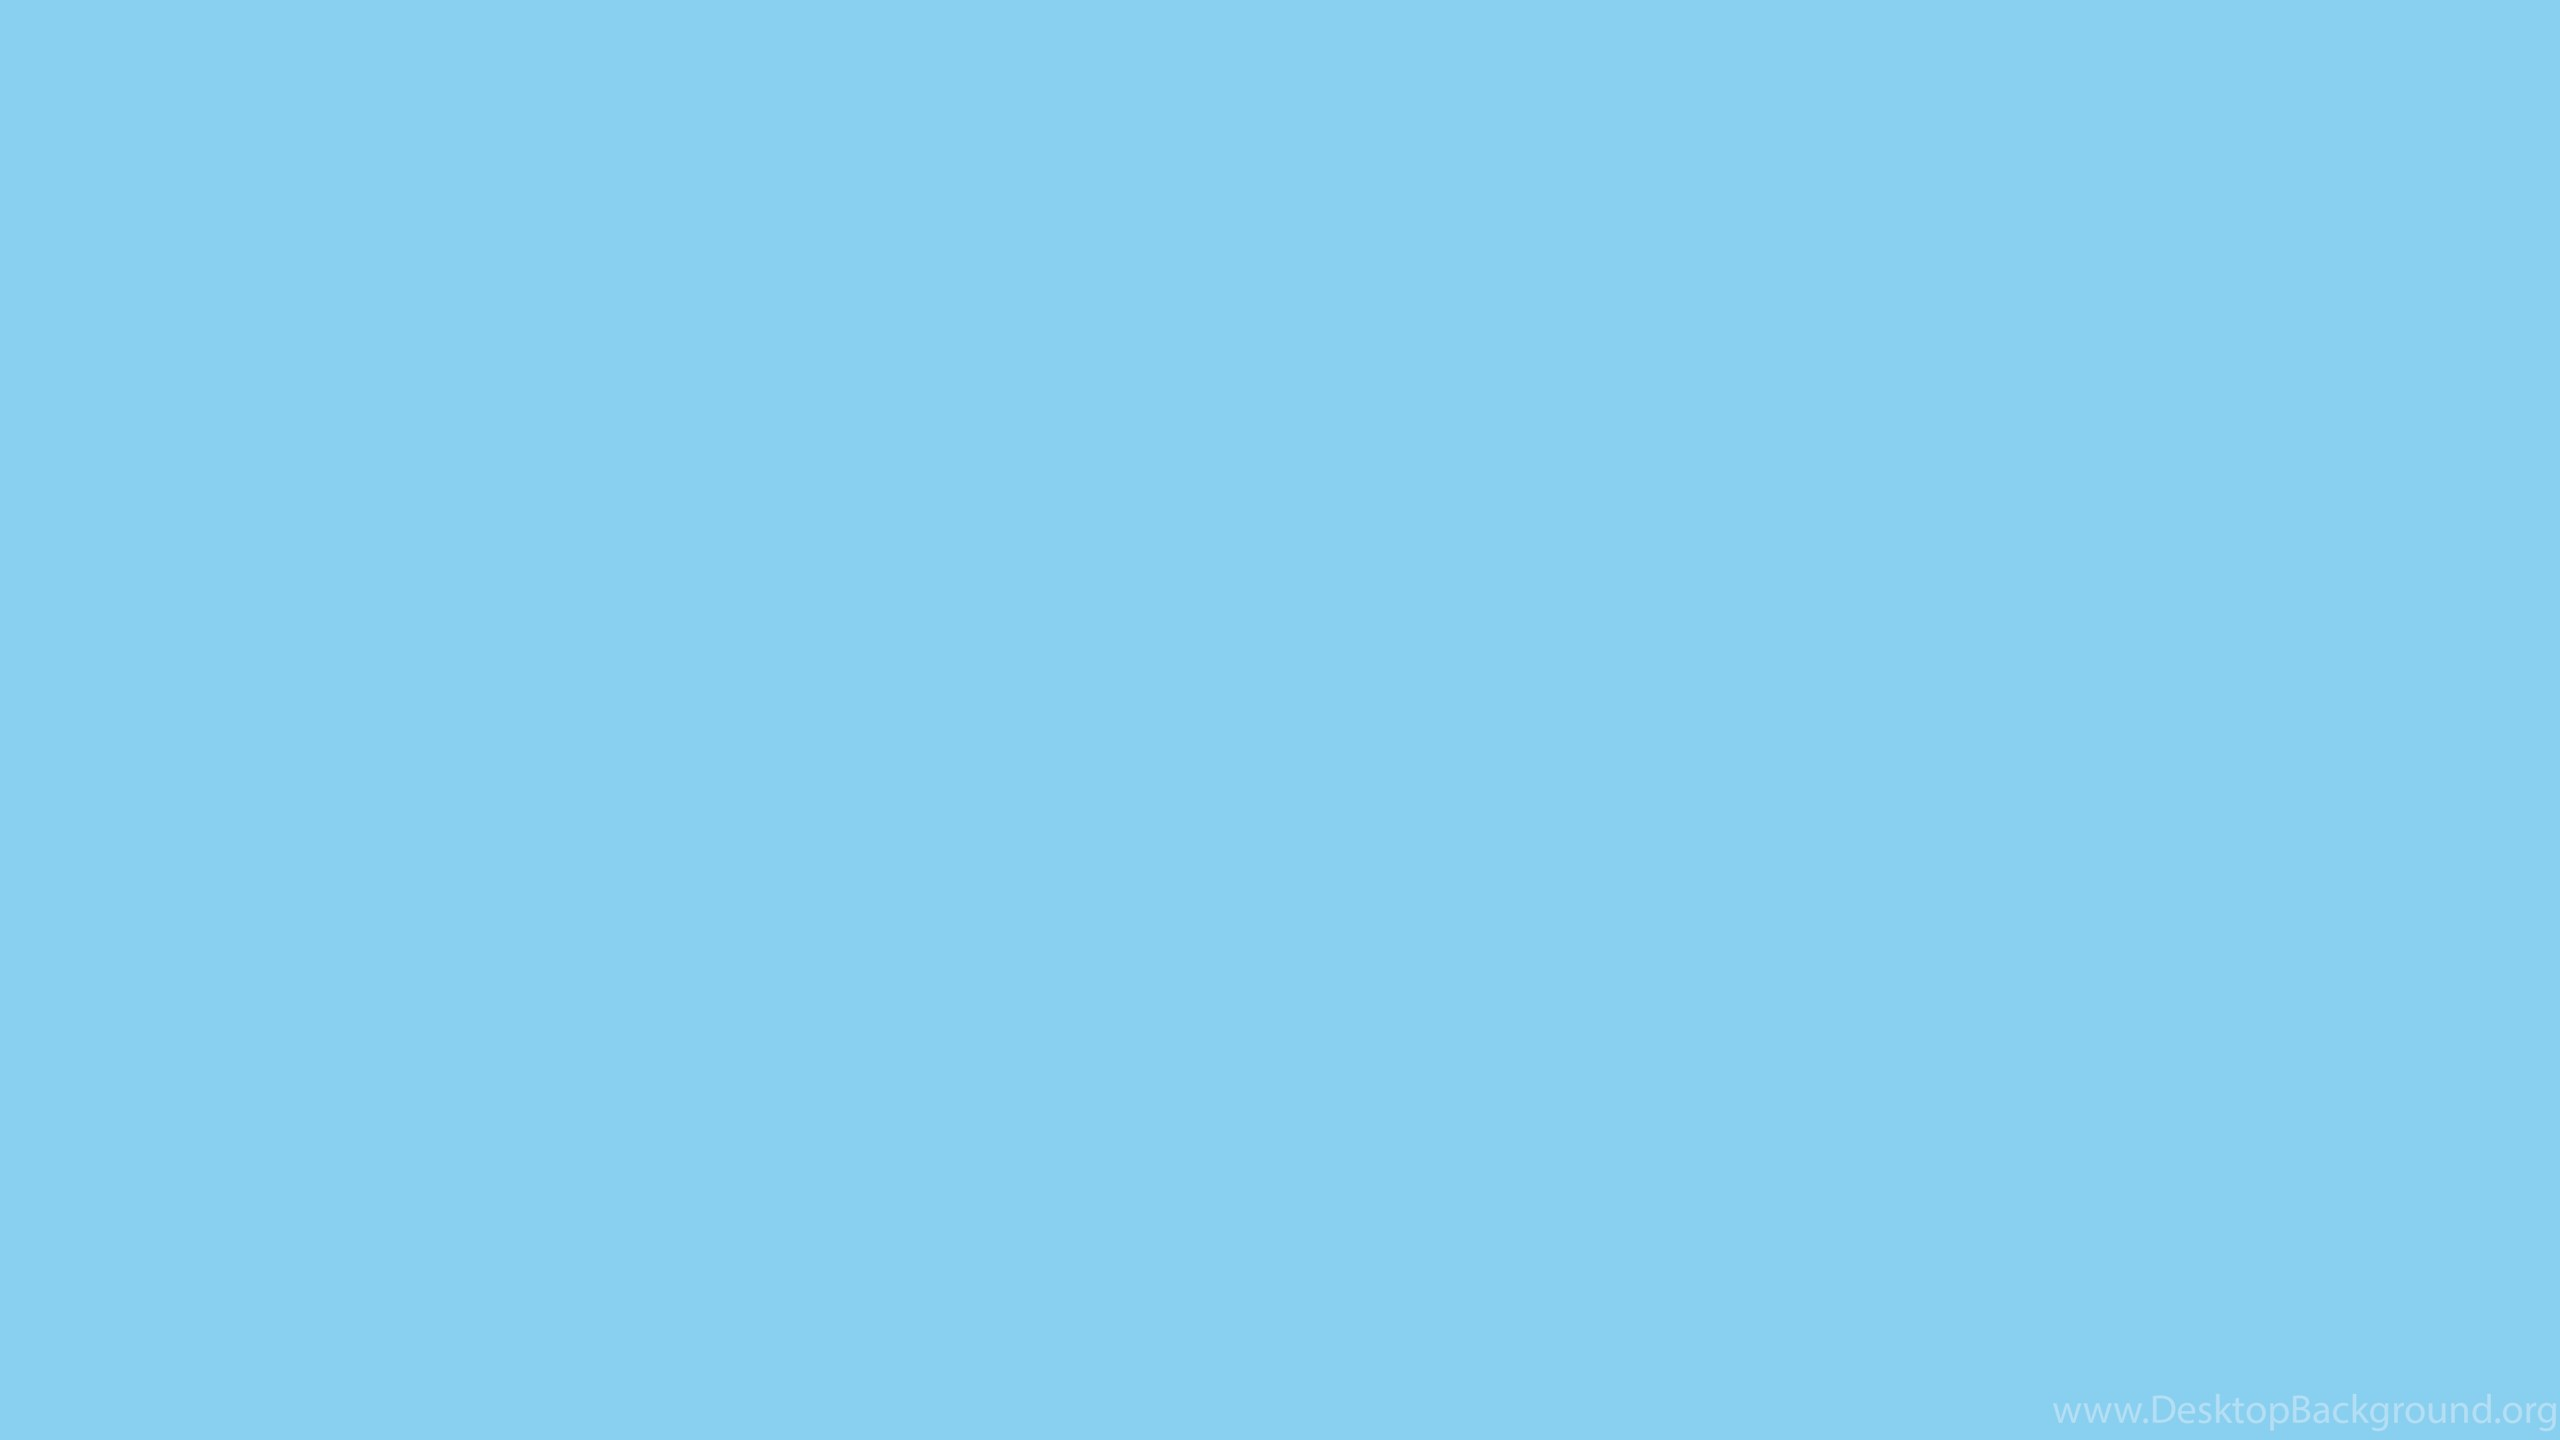 5120x2880 Baby Blue Solid Color Backgrounds Desktop Background